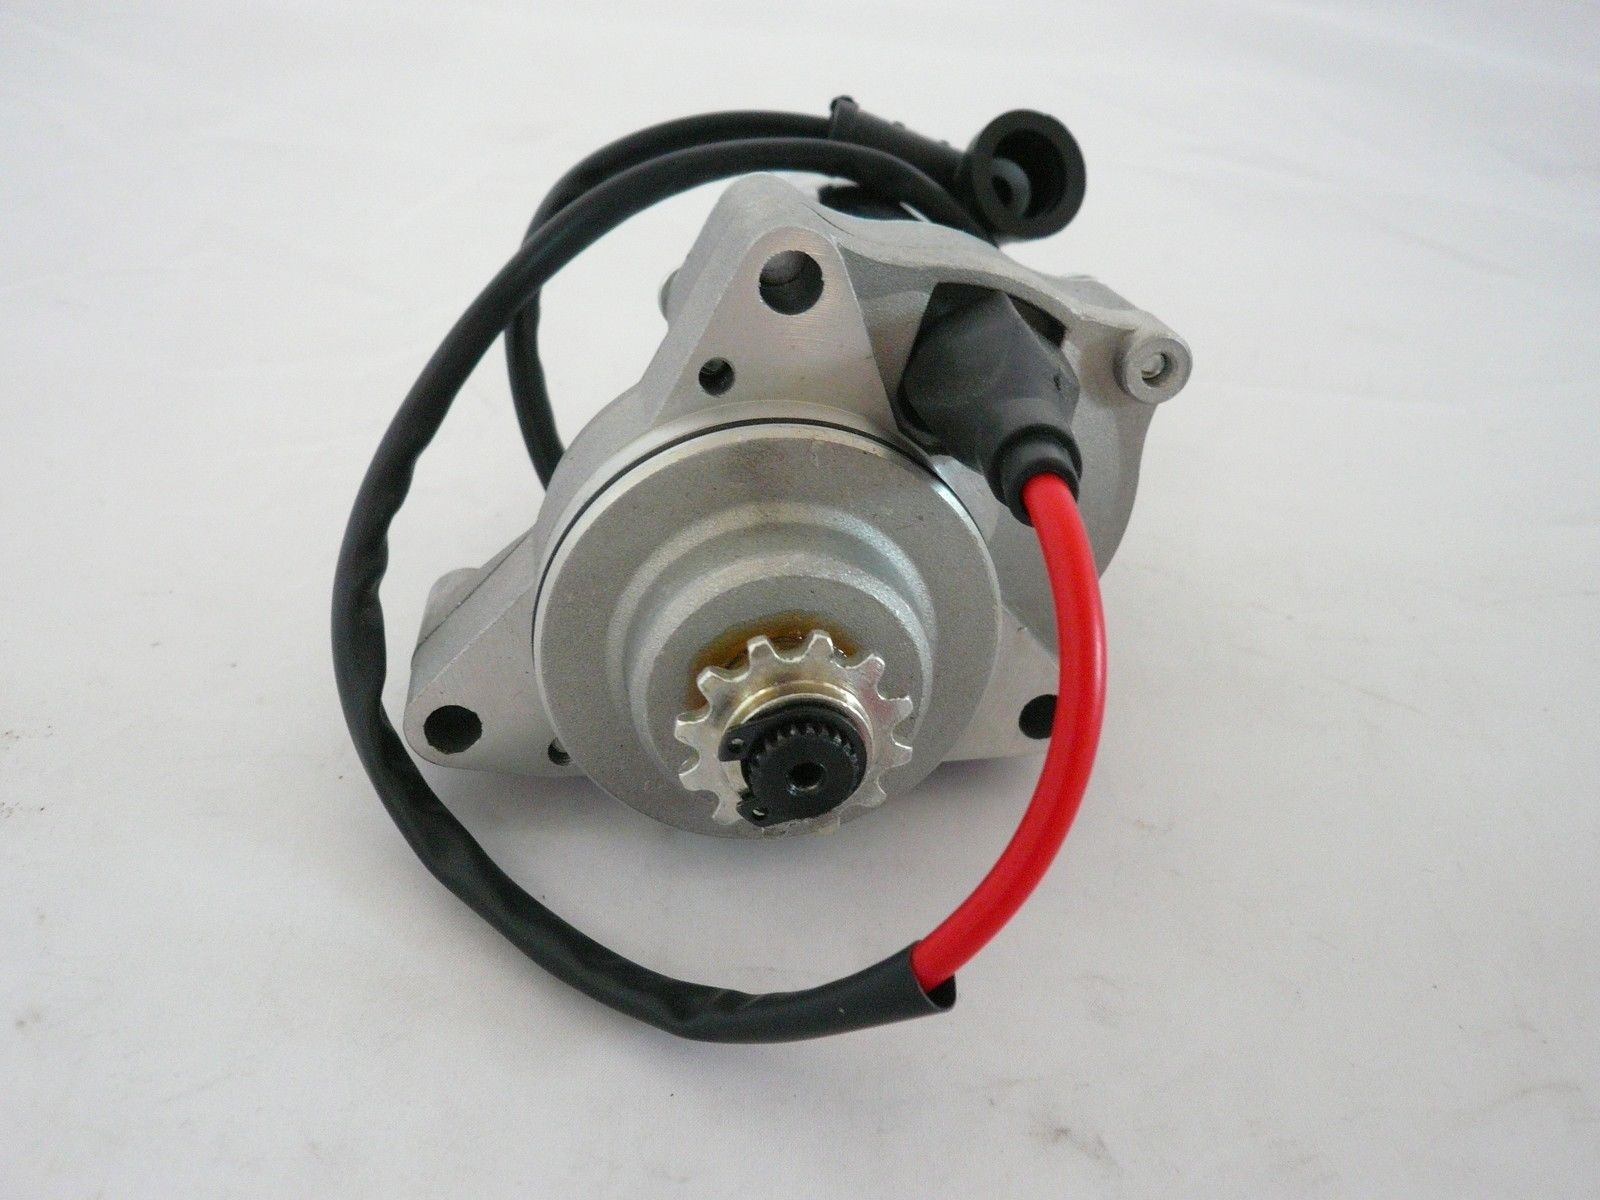 Atv quad electric bike upper starter motor 50cc 70cc 90cc for How to make an electric bike with a starter motor